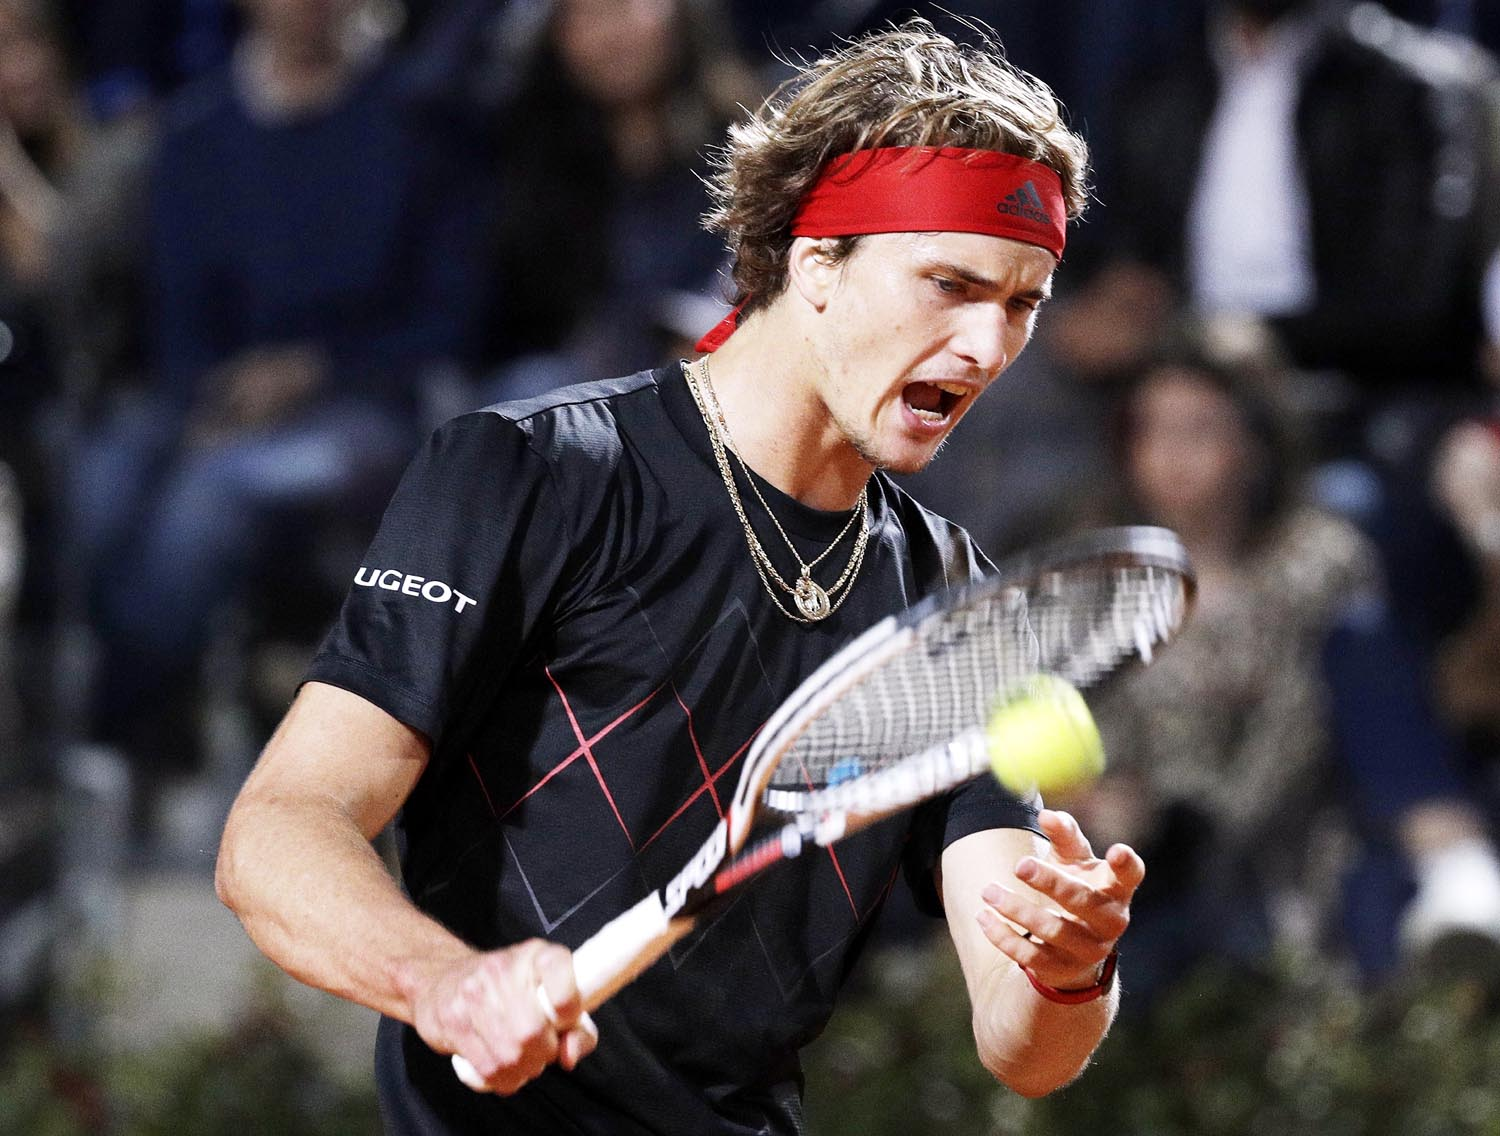 Germany`s Alexander Zverev reacts after winning a point to Croatia's Marin Cilic during their semifinal match at the Italian Open tennis tournament in Rome on Saturday.